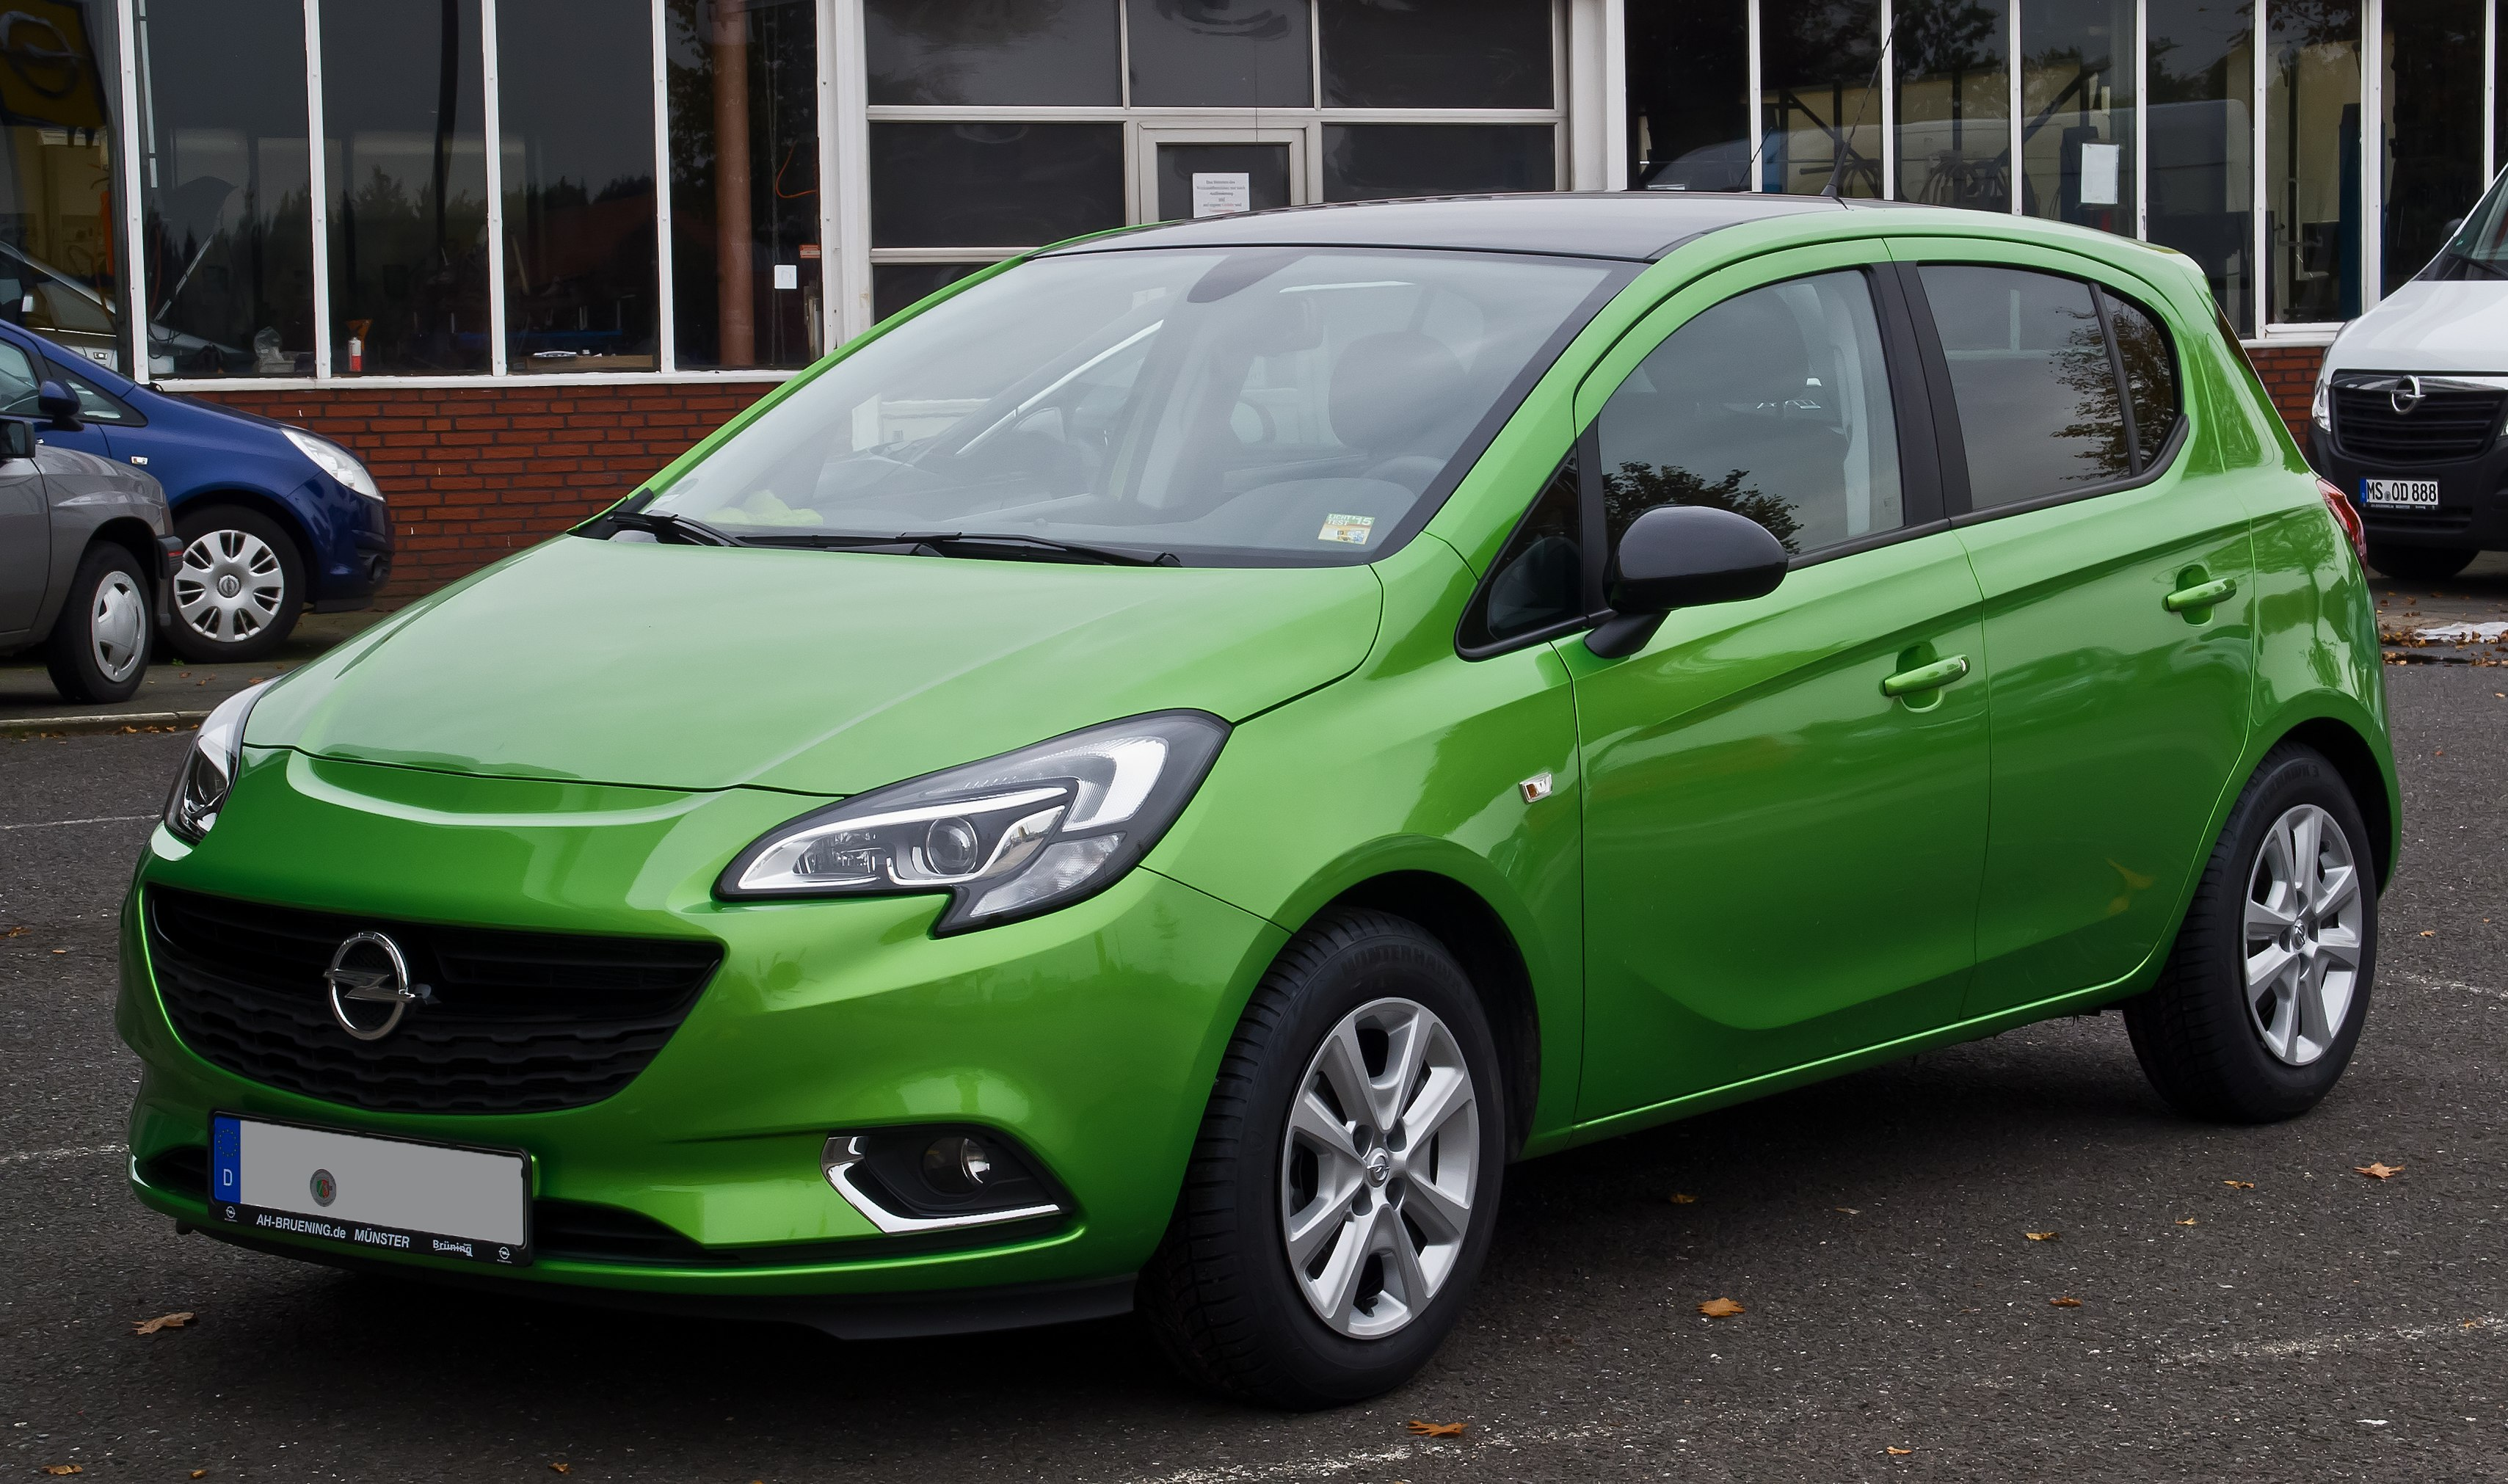 General Motors Corsa The plete information and online sale with